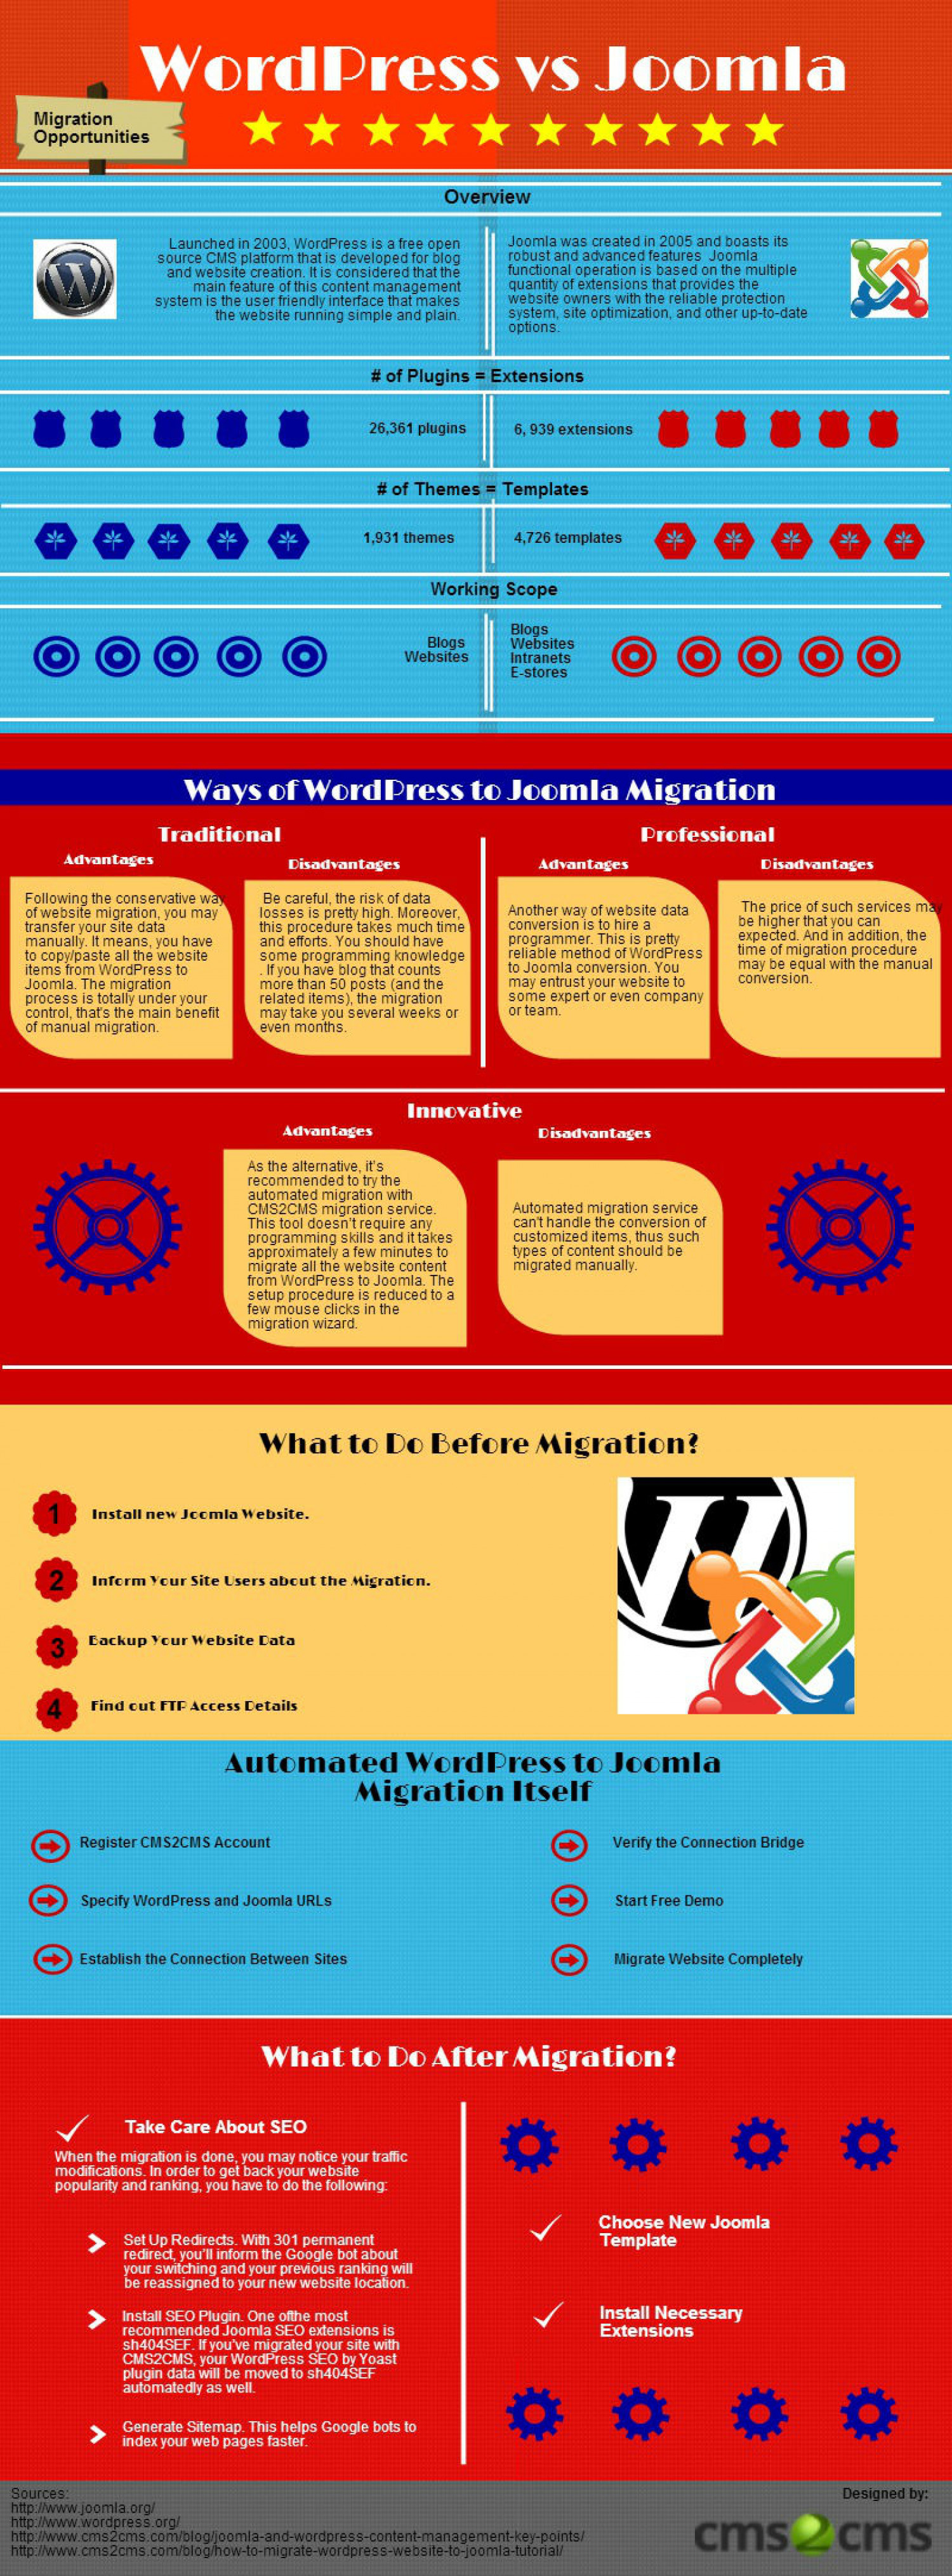 WordPress to Joomla: How to Switch Over? Infographic